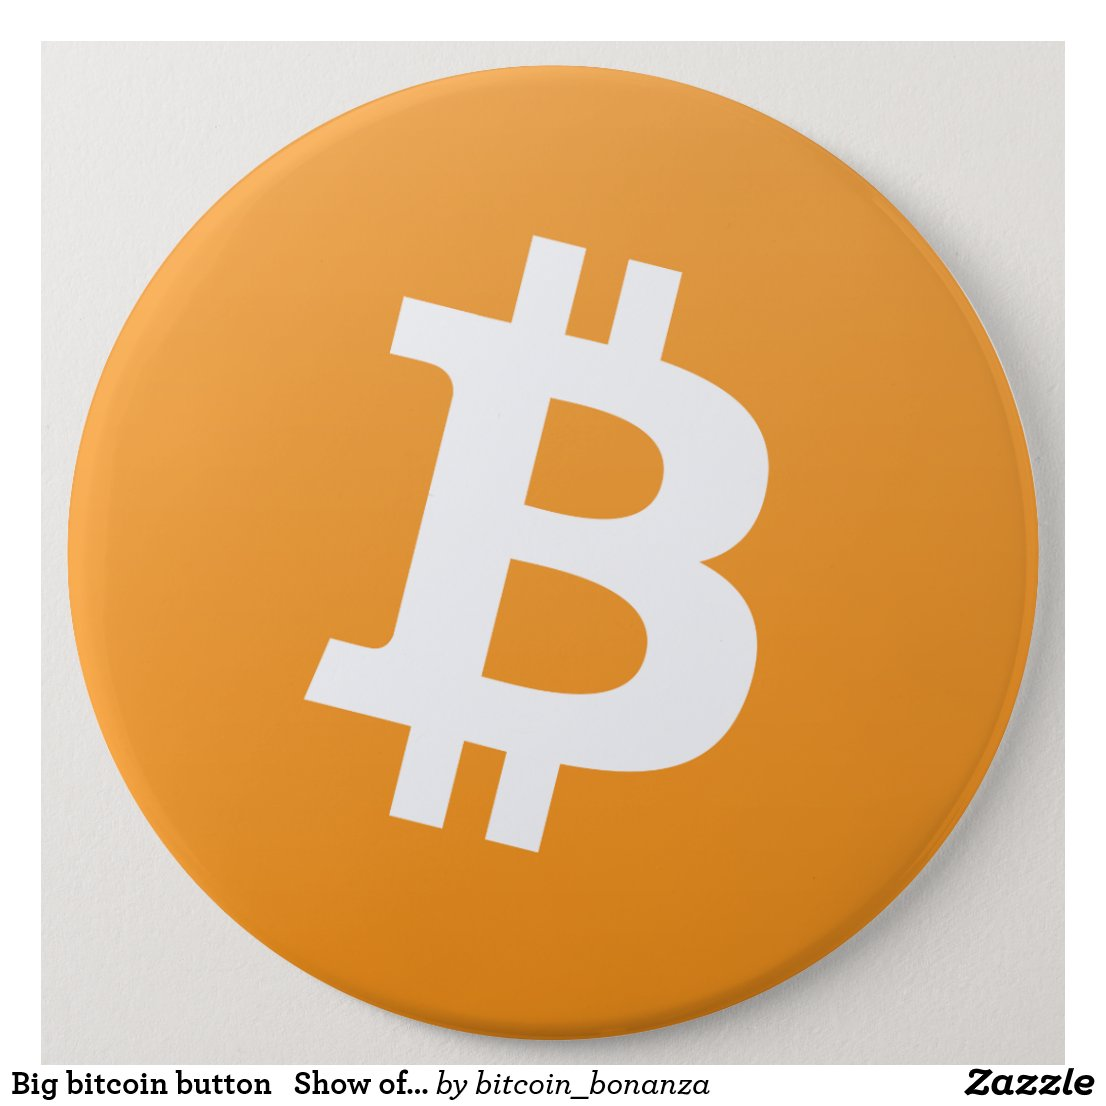 Big bitcoin button Show off your love of bitcoin